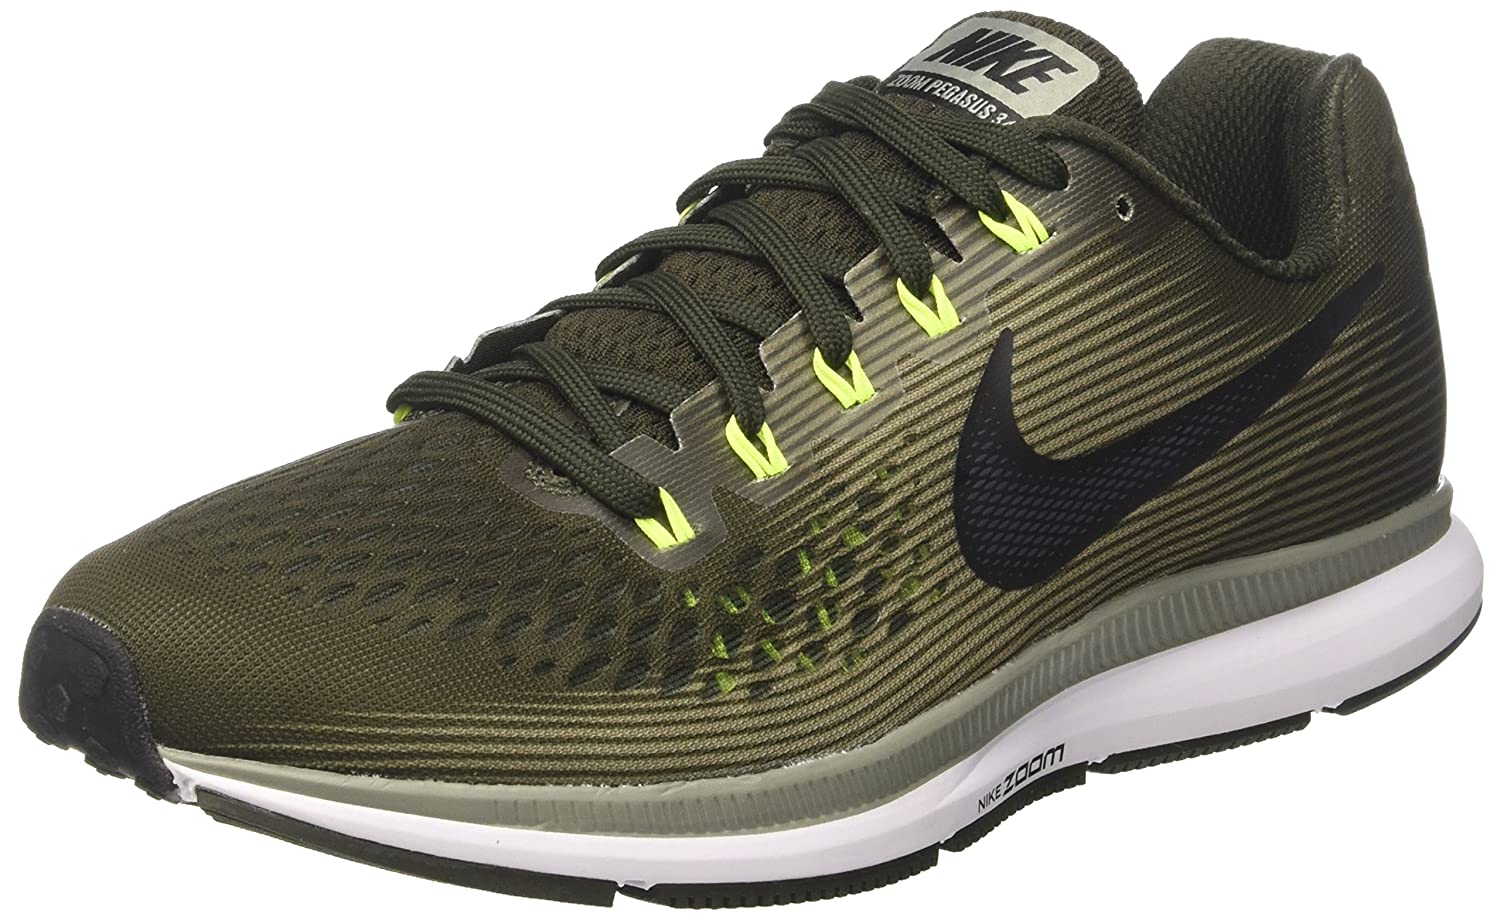 competitive price 90043 e9e4e Nike Air Zoom Pegasus 34, Chaussures de Running Homme  Amazon.fr   Chaussures et Sacs